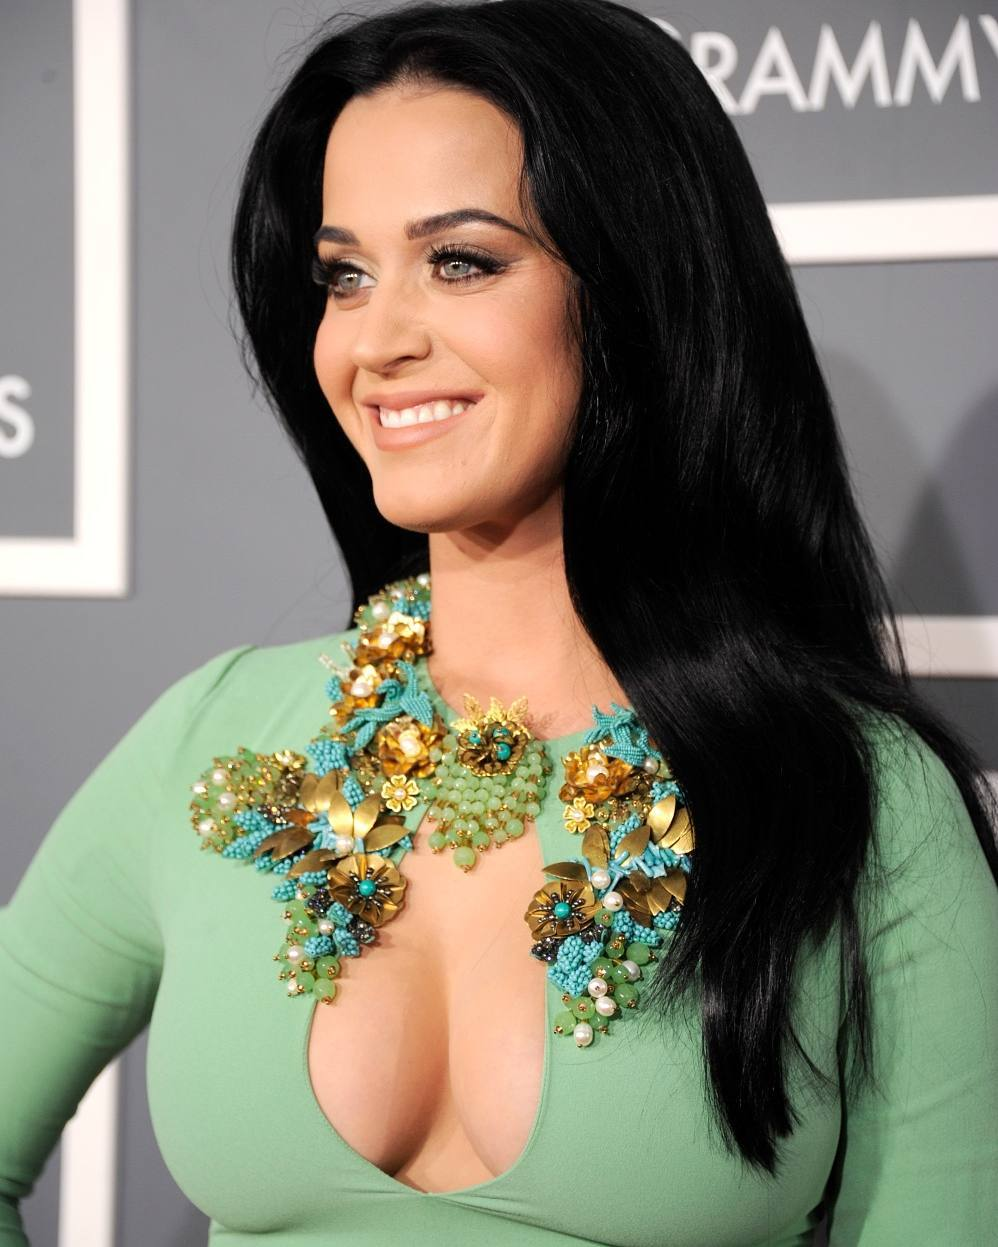 Katy Perry Latest Hot Photo Gallery